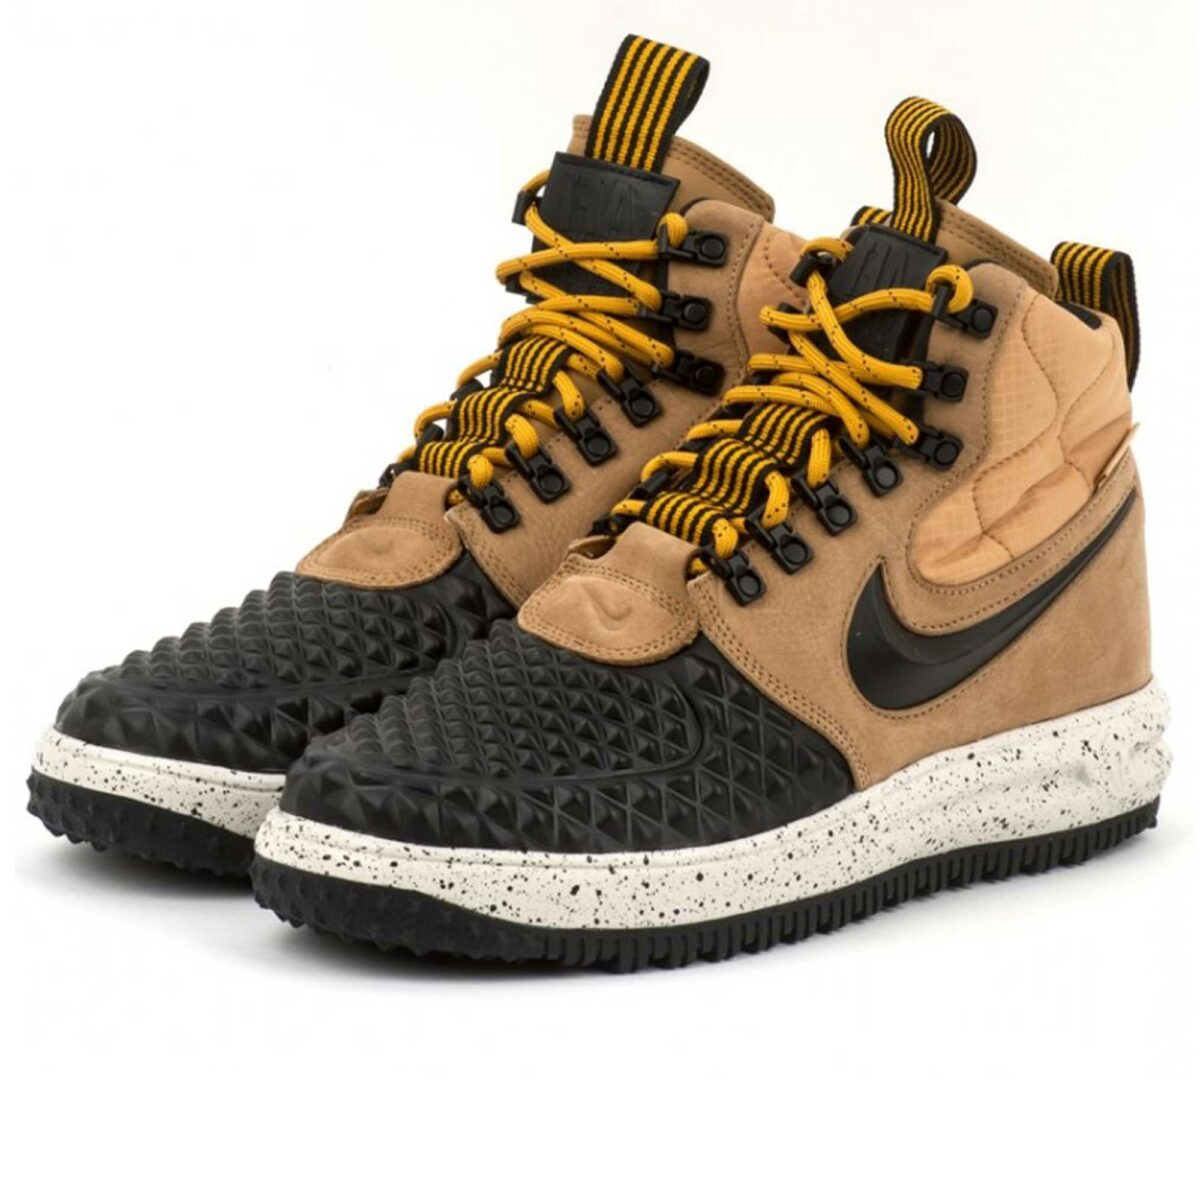 nike air lunar force 1 duckboot'17 916682_701 купить